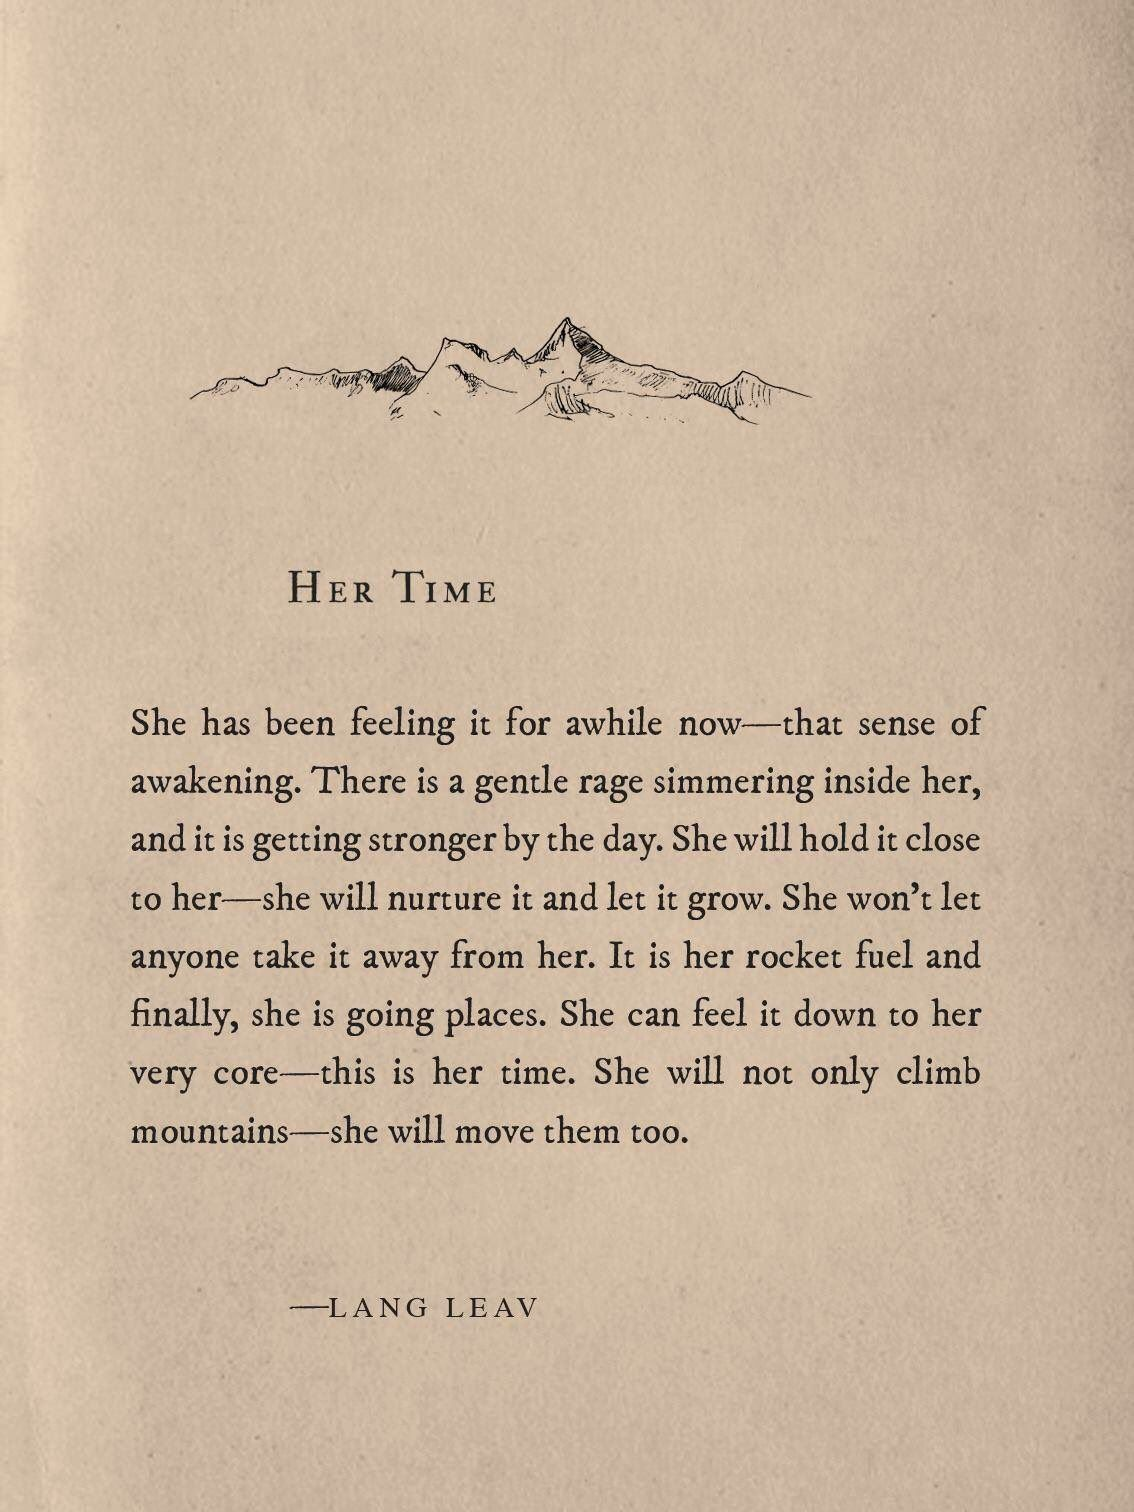 """Lang Leav on Twitter: """"Time to move those mountains ✨ https://t.co/KDDeZyZE4Z"""""""